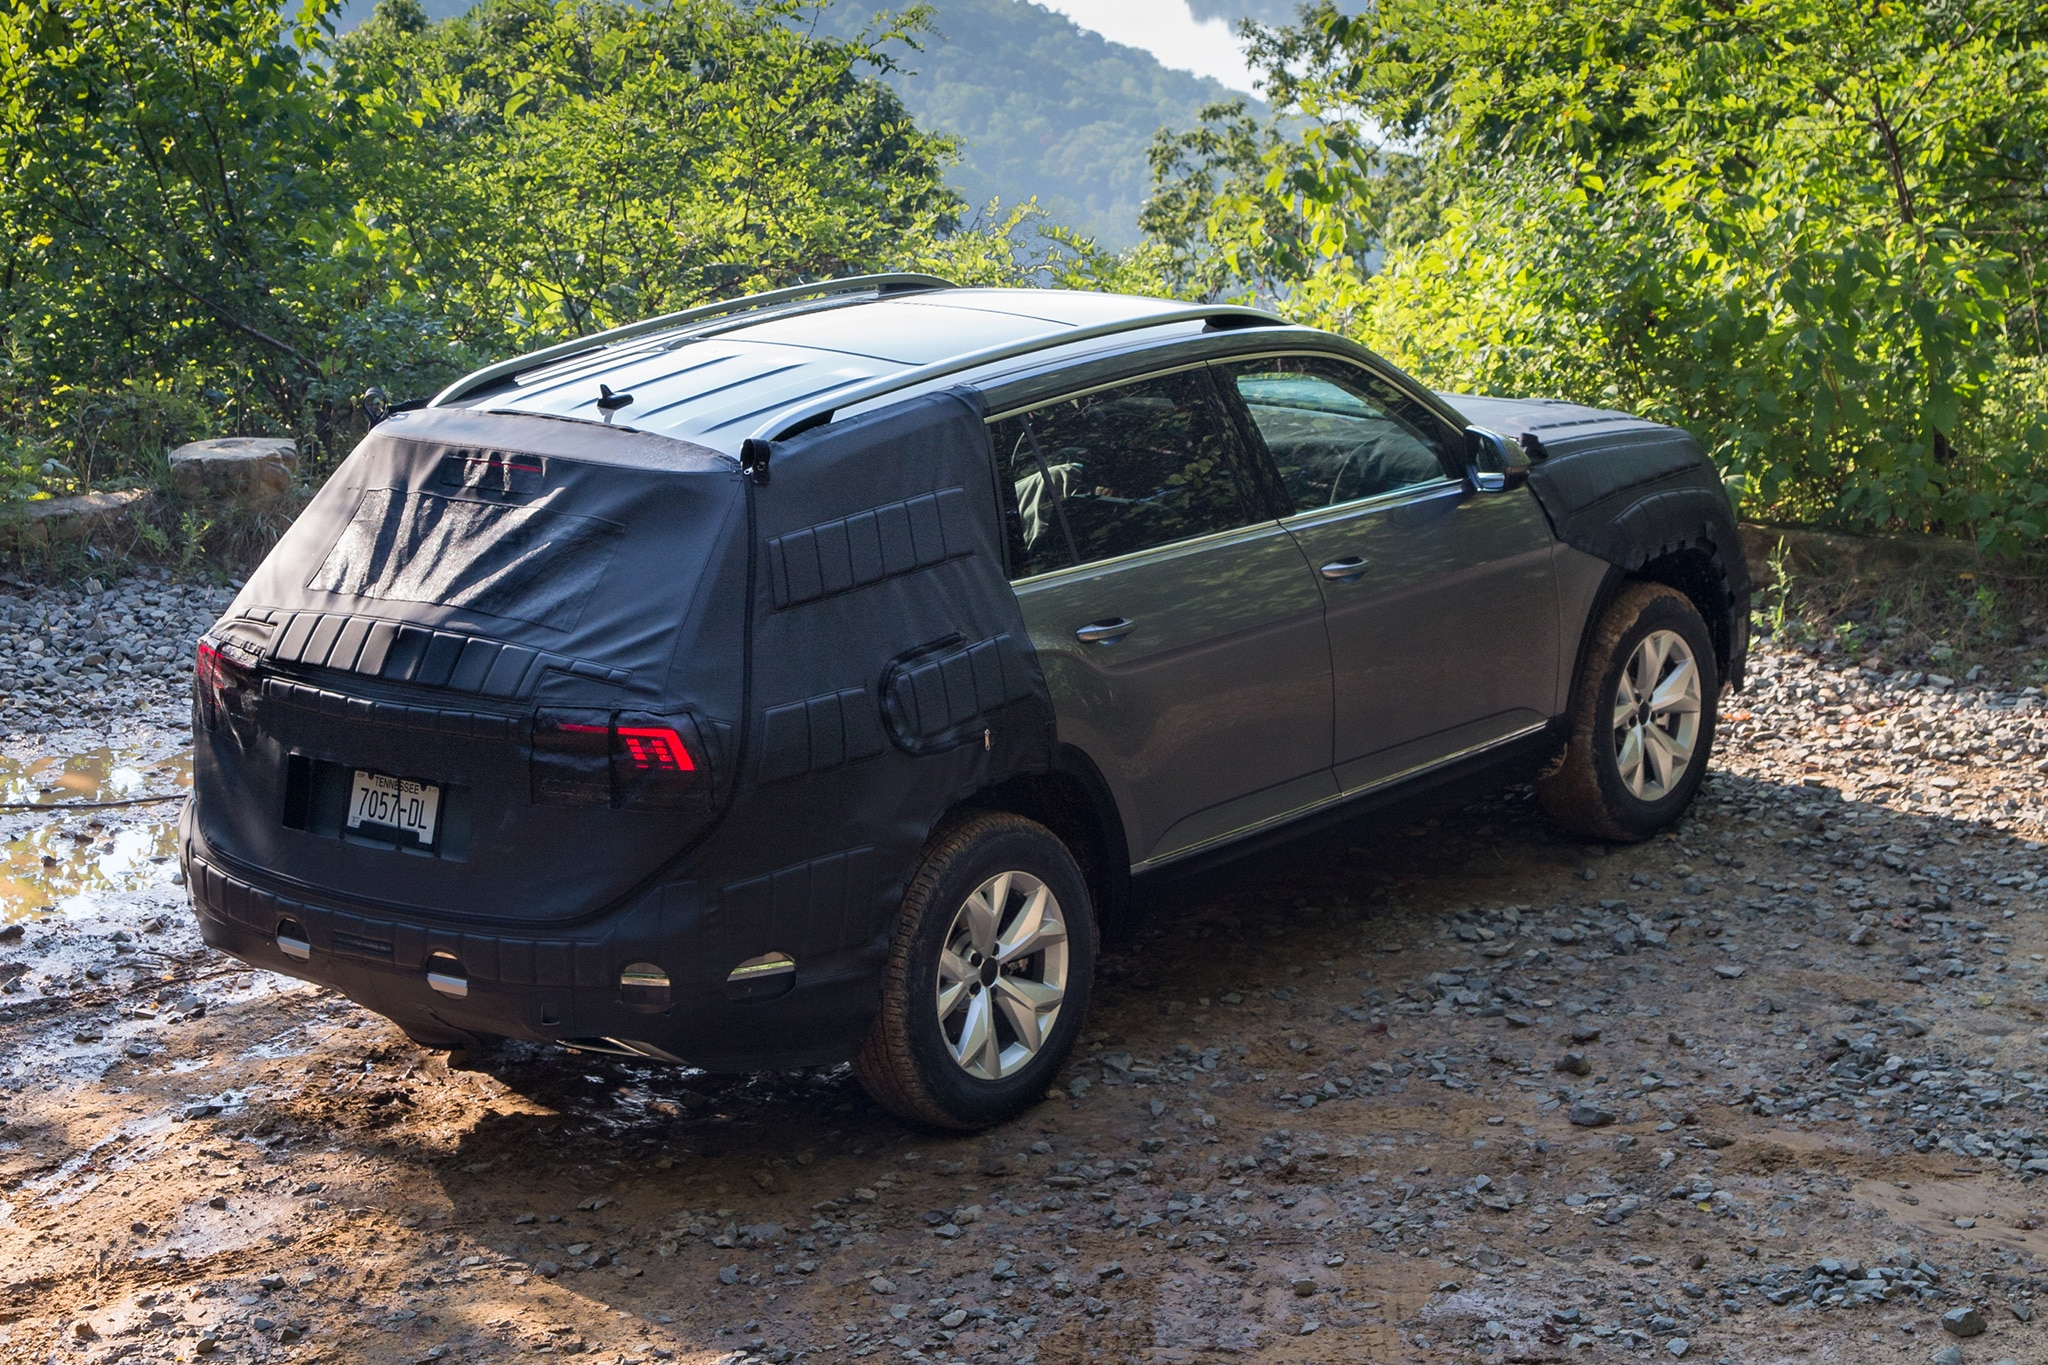 Volkswagen Midsize SUV Prototype rear three quarter 01